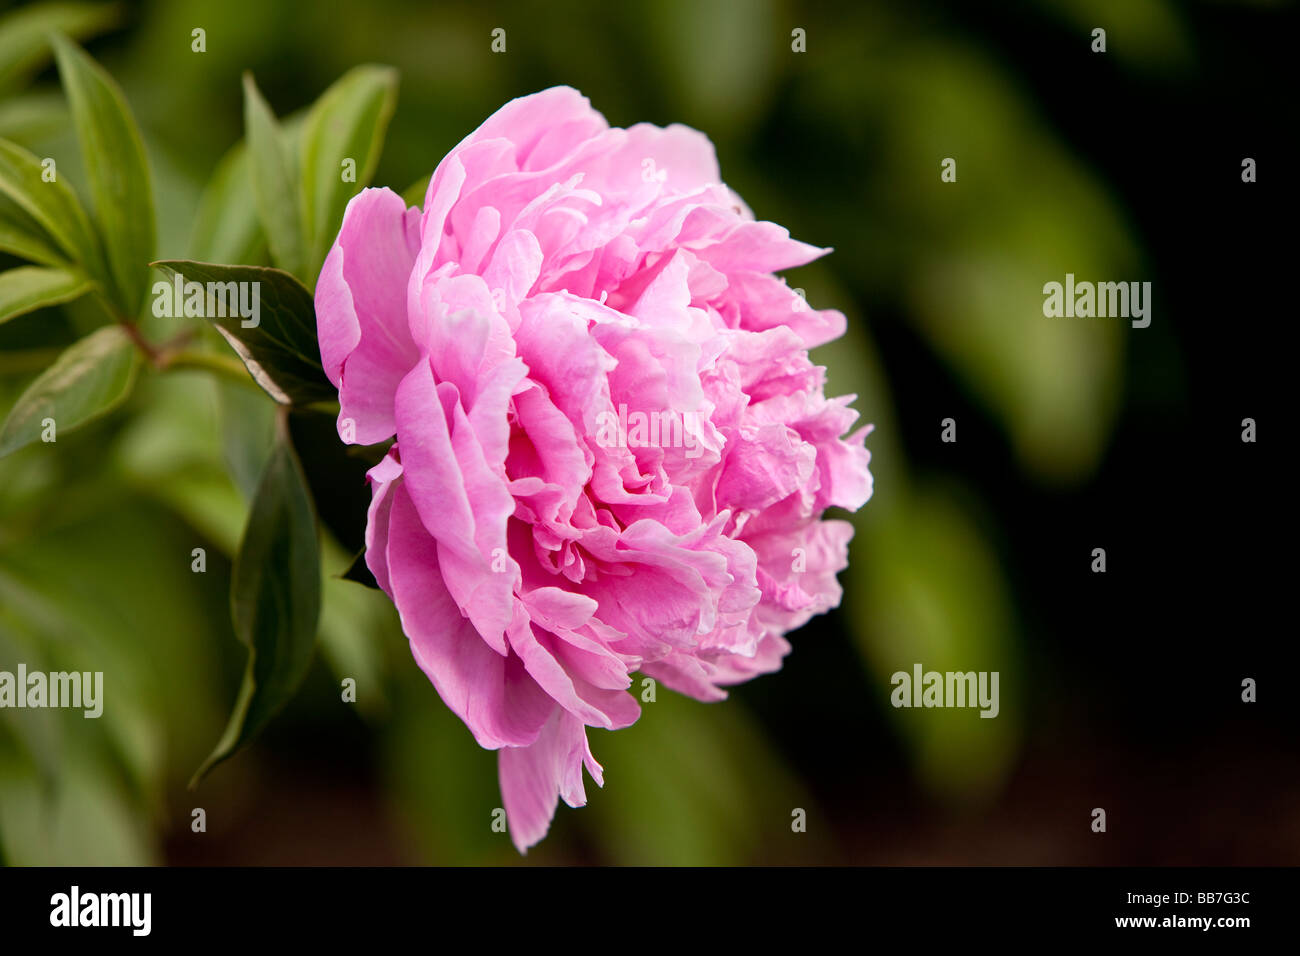 A pink peony - a flowering plant in the genus Paeonia - the only genus in the family Paeoniaceae. - Stock Image